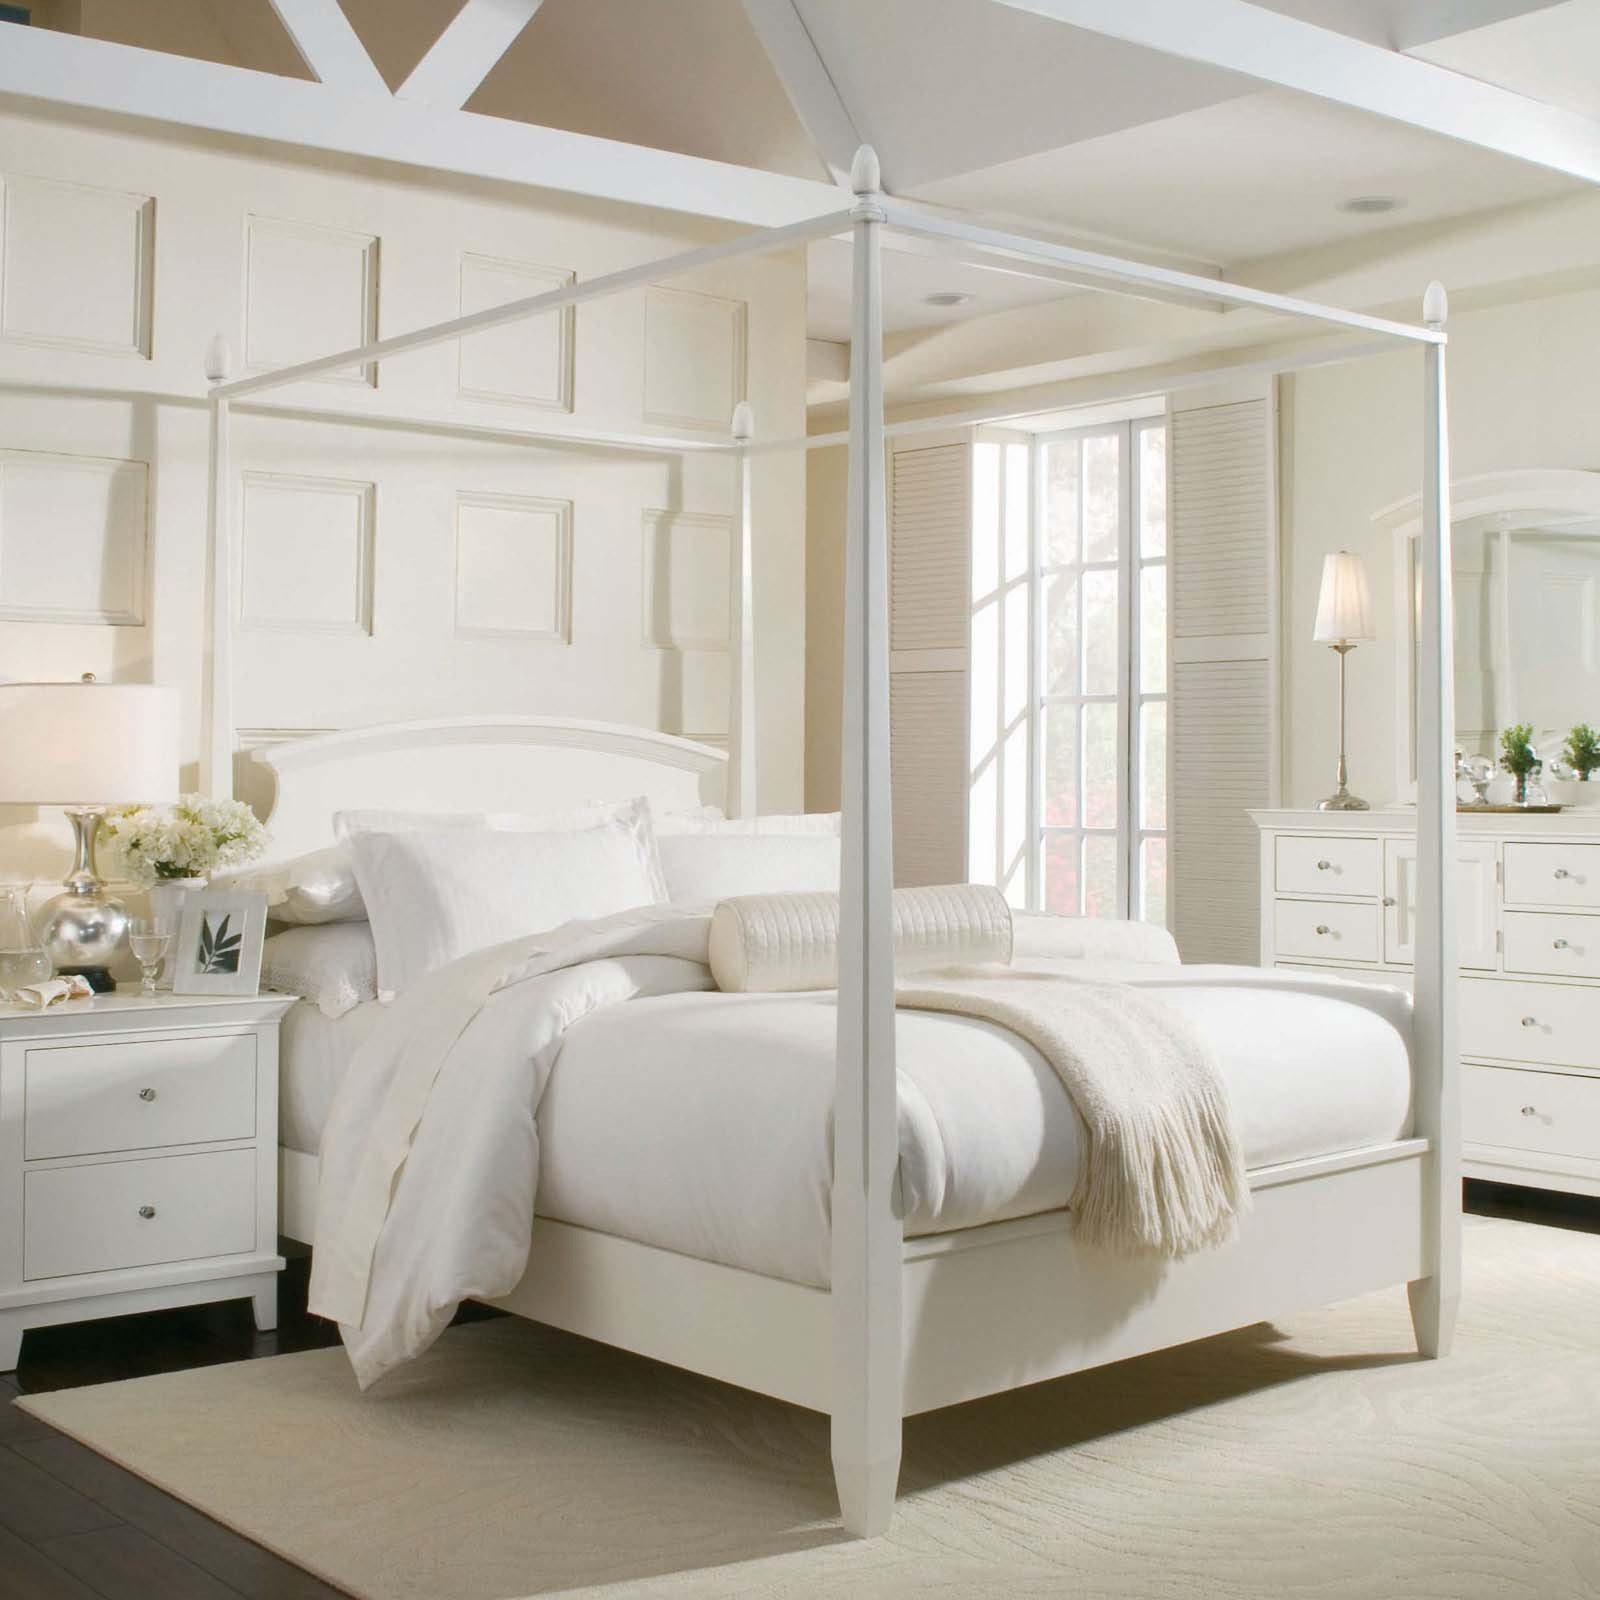 Bedroom White Bed with Canopy